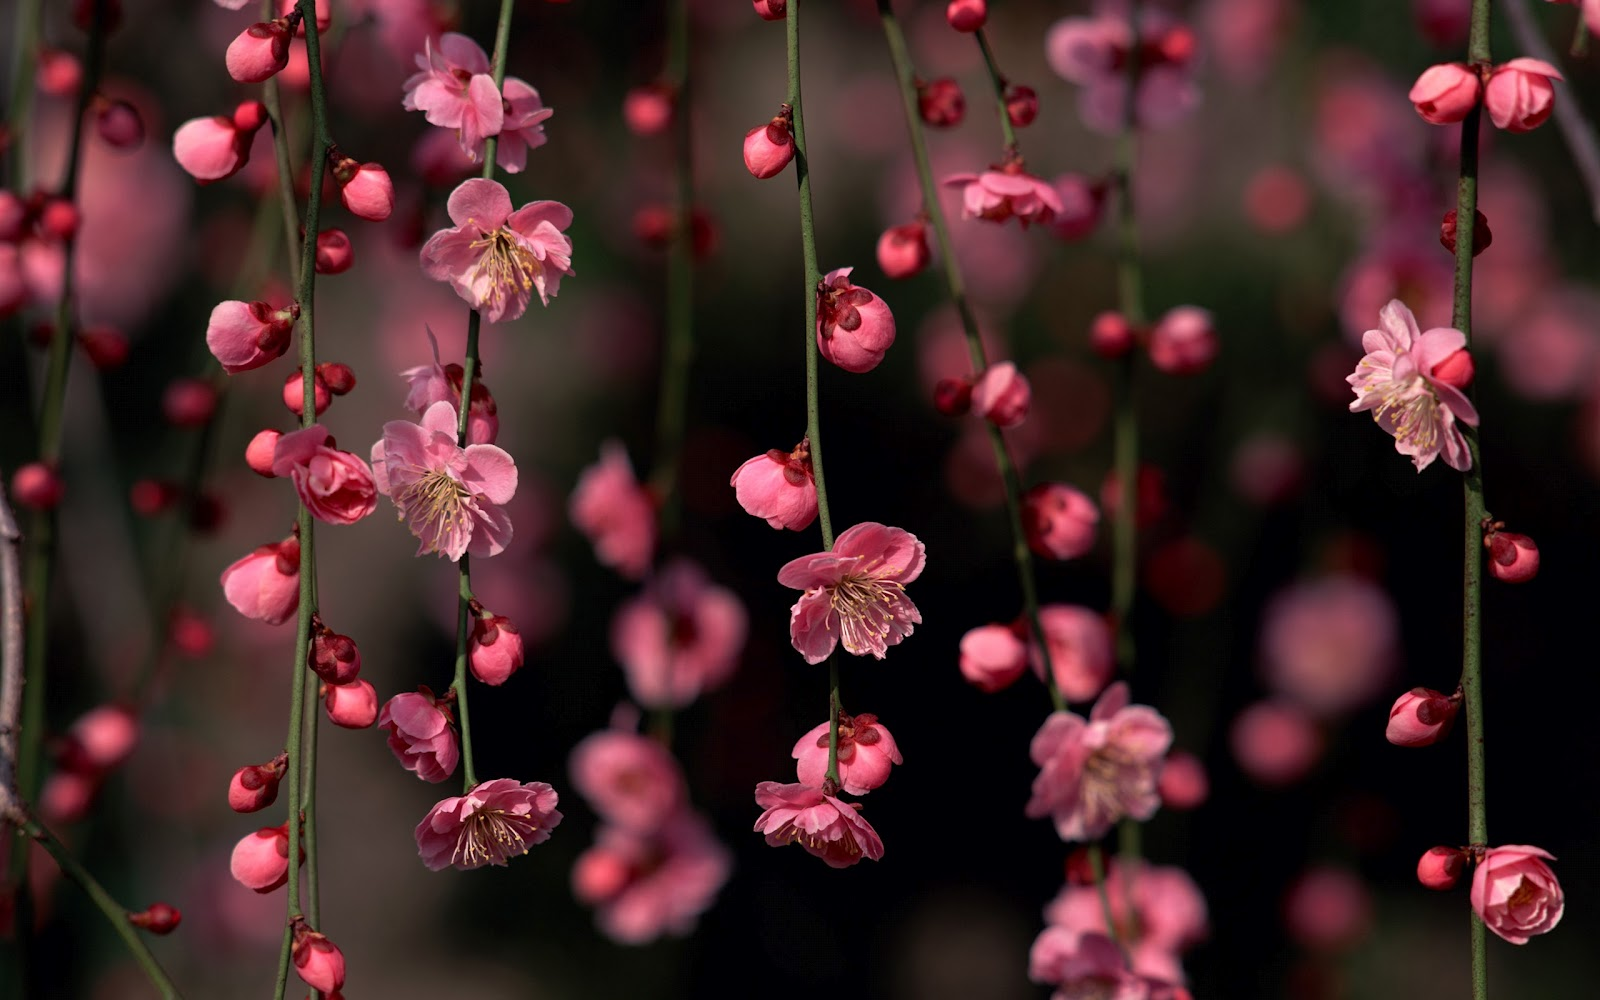 sakura-blossom-awesome-spring-flowers-nature_179469